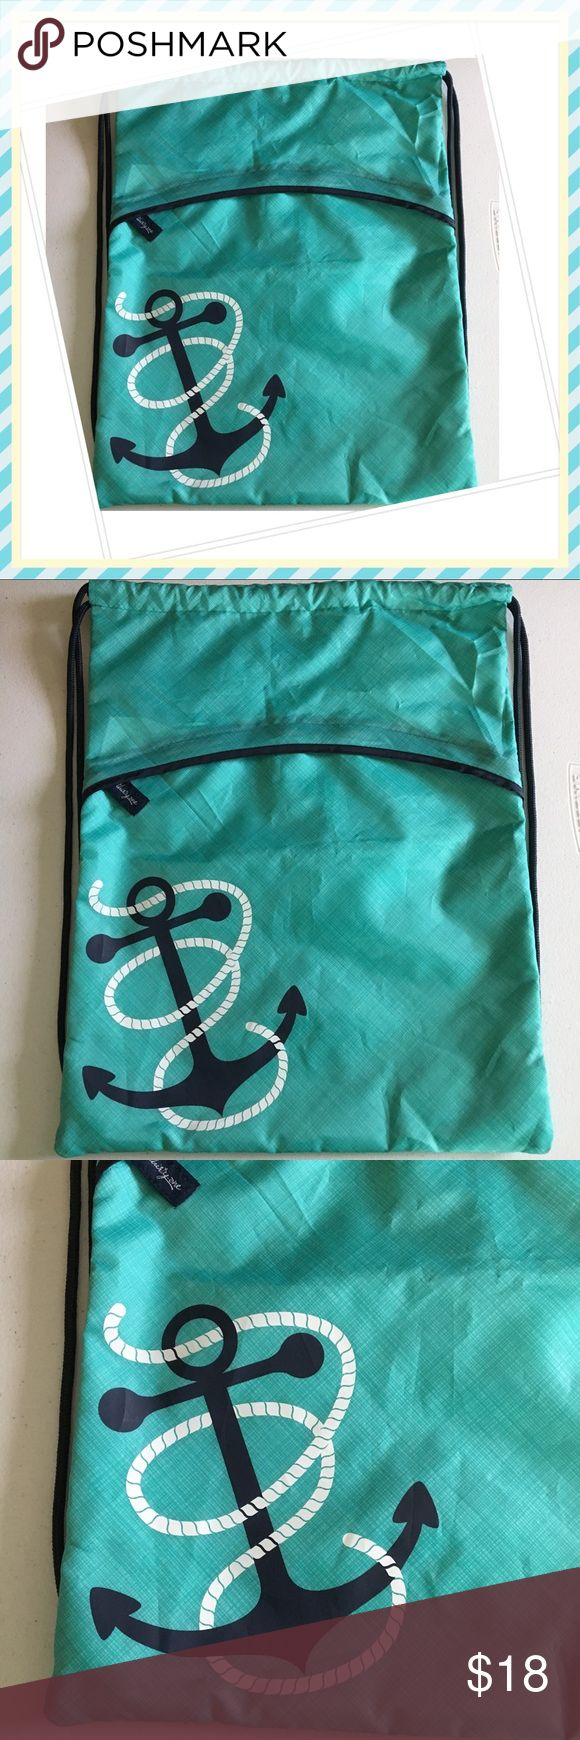 Thirty One Cinch Sack In New new condition; nylon anchor backpack from Thirty-One. Cute lot turquoise, measures 17.5x14.5. Any signs of wear is only because it's been kept away inside a box for a long time. Thirty-One Bags Backpacks